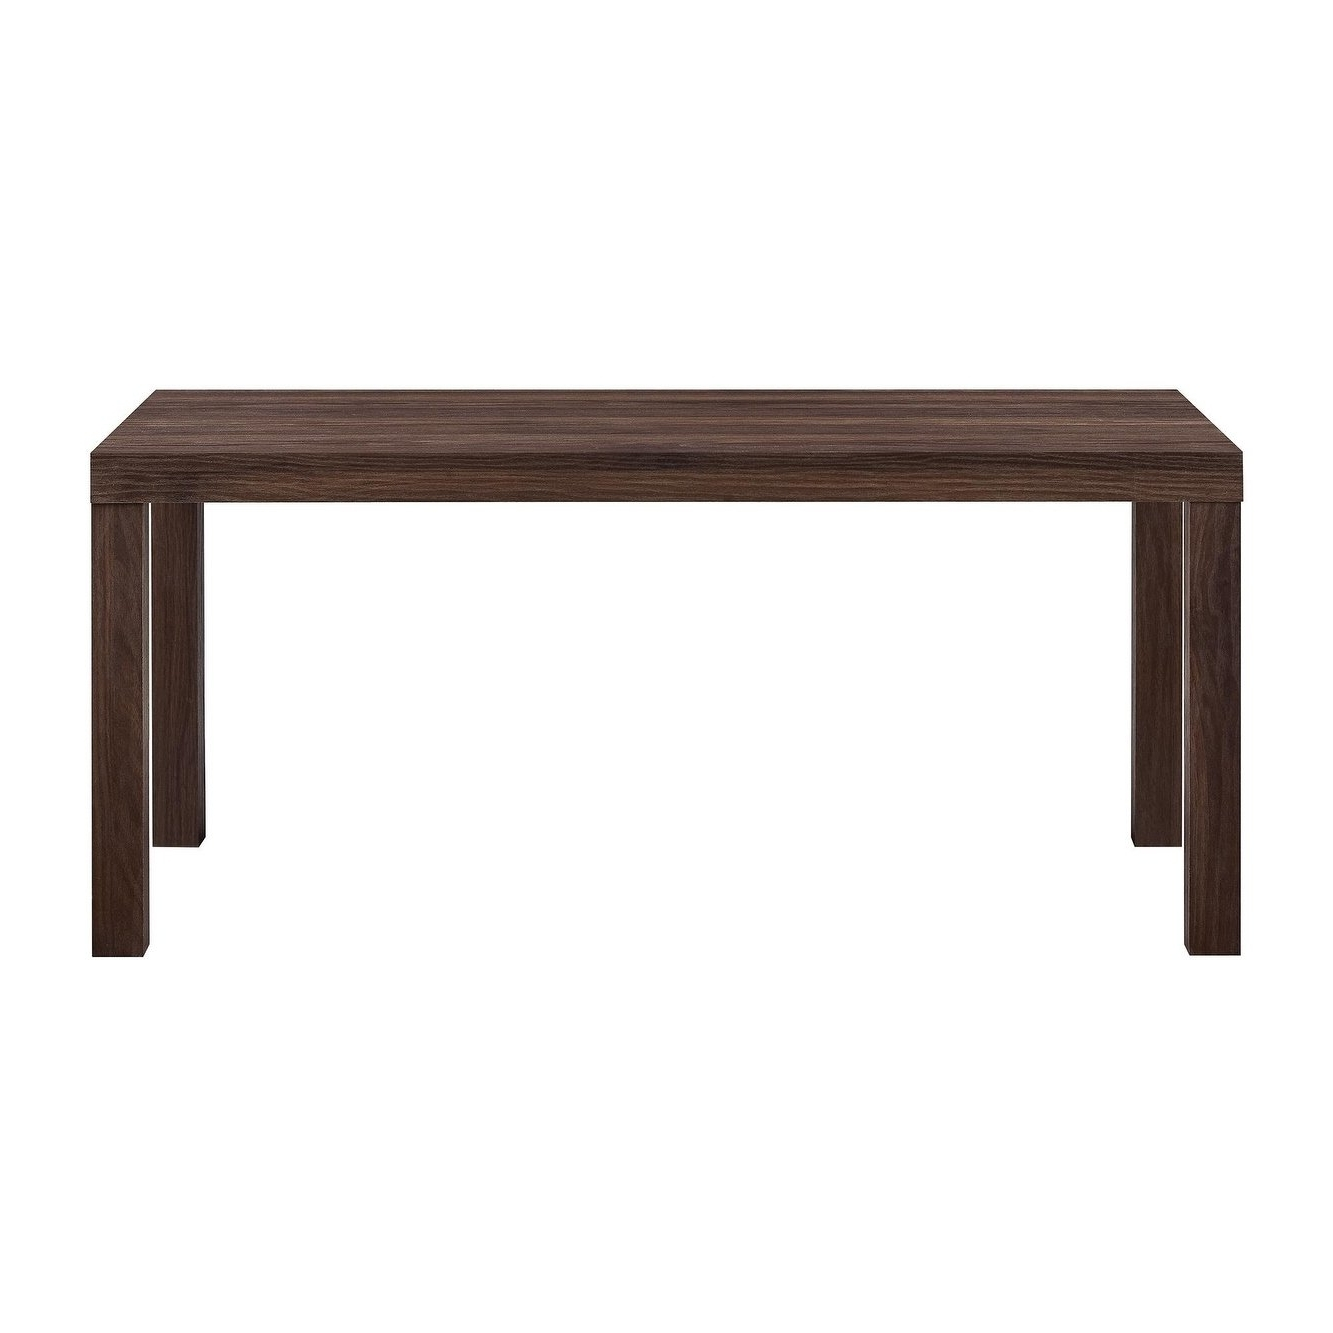 Shop Avenue Greene Jaxon Walnut Coffee Table – Free Shipping Today Within Famous Jaxon Cocktail Tables (View 10 of 20)